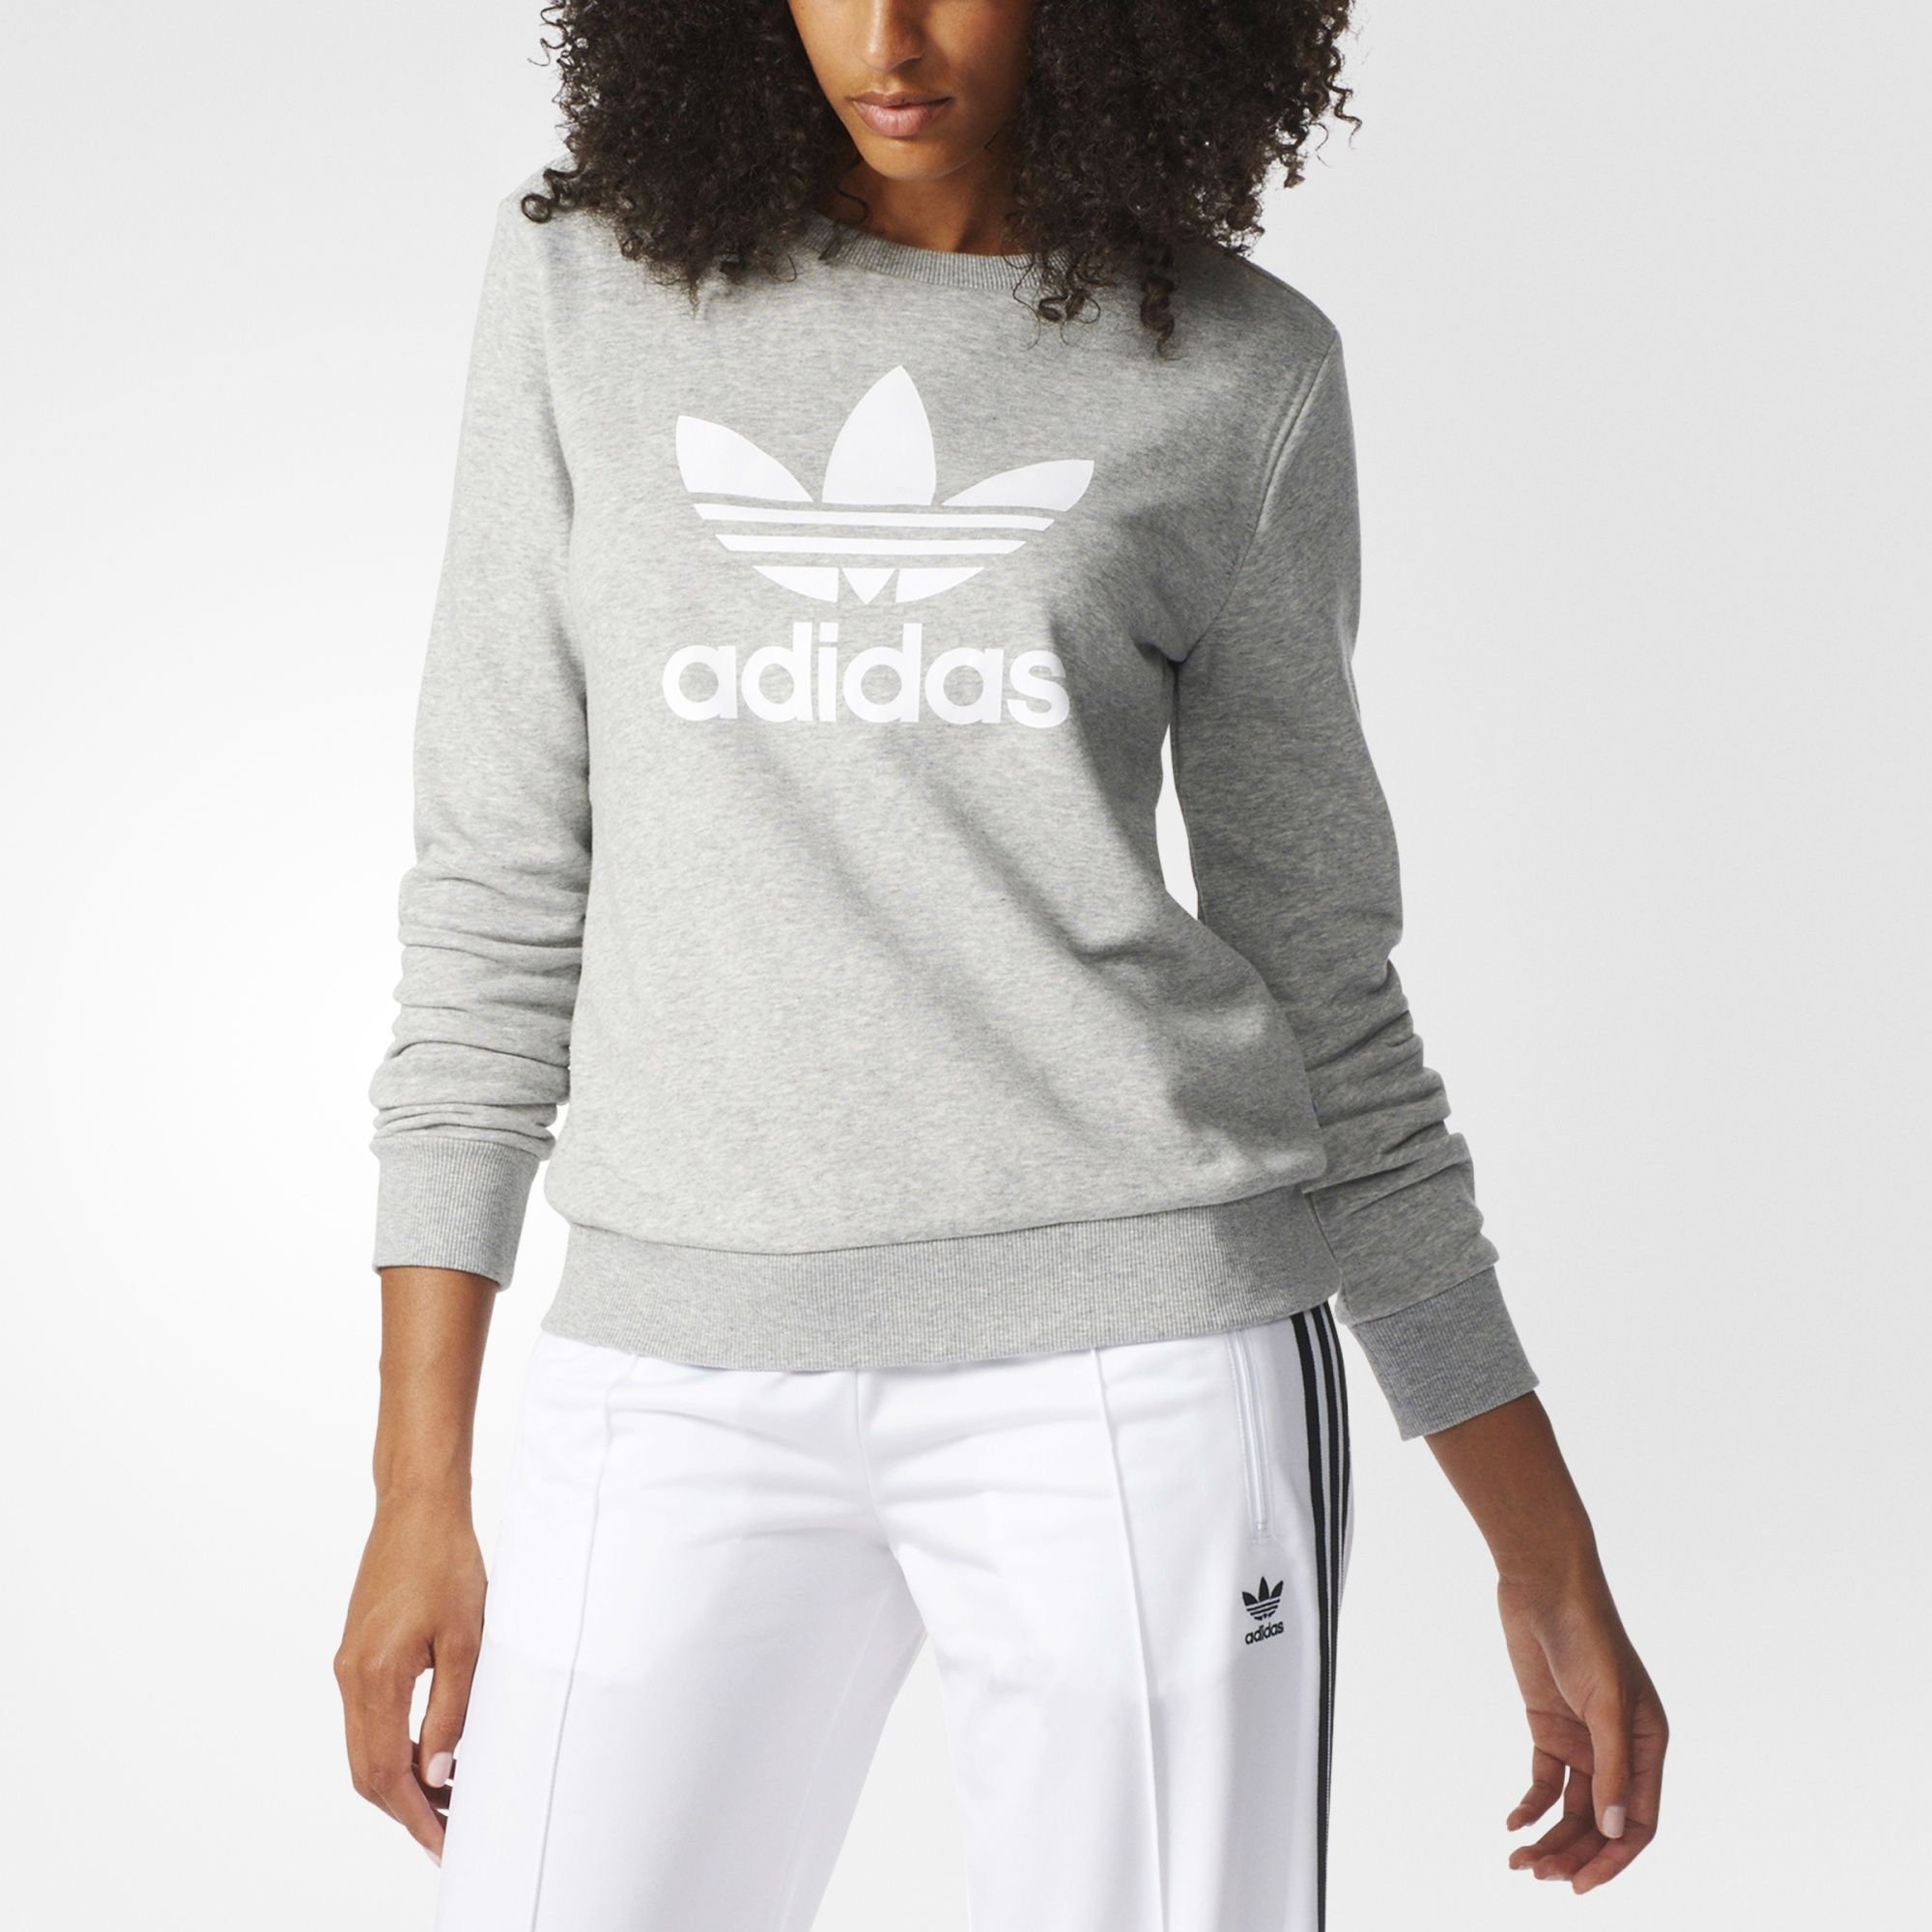 Comfort Combines With Tried And True Sporty Style In This Women S Sweatshirt It Comes In A French T Women Hoodies Sweatshirts Sweatshirts Womens Clothing Tops [ 2000 x 2000 Pixel ]